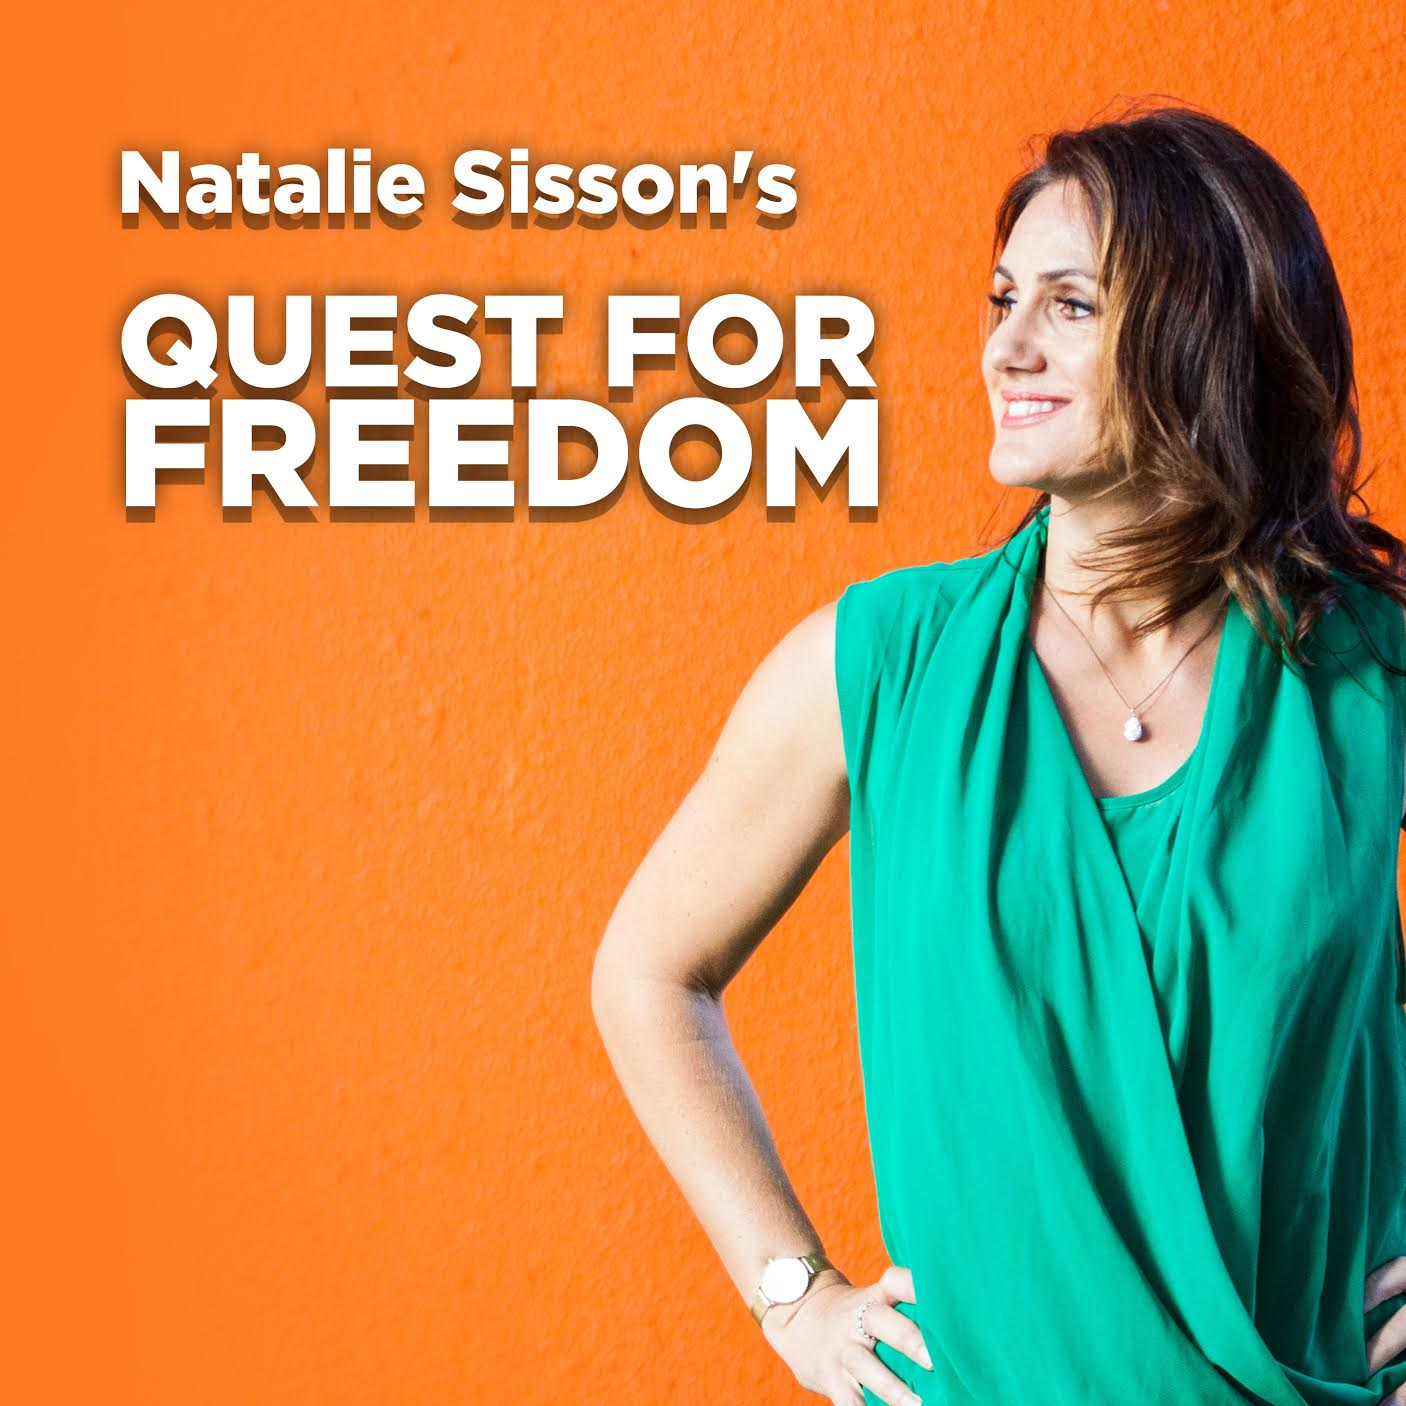 <![CDATA[Natalie Sisson's Quest for Freedom - Experiments in Personal, Financial, Physical, Business, Relationship and Financial Freedom.]]>